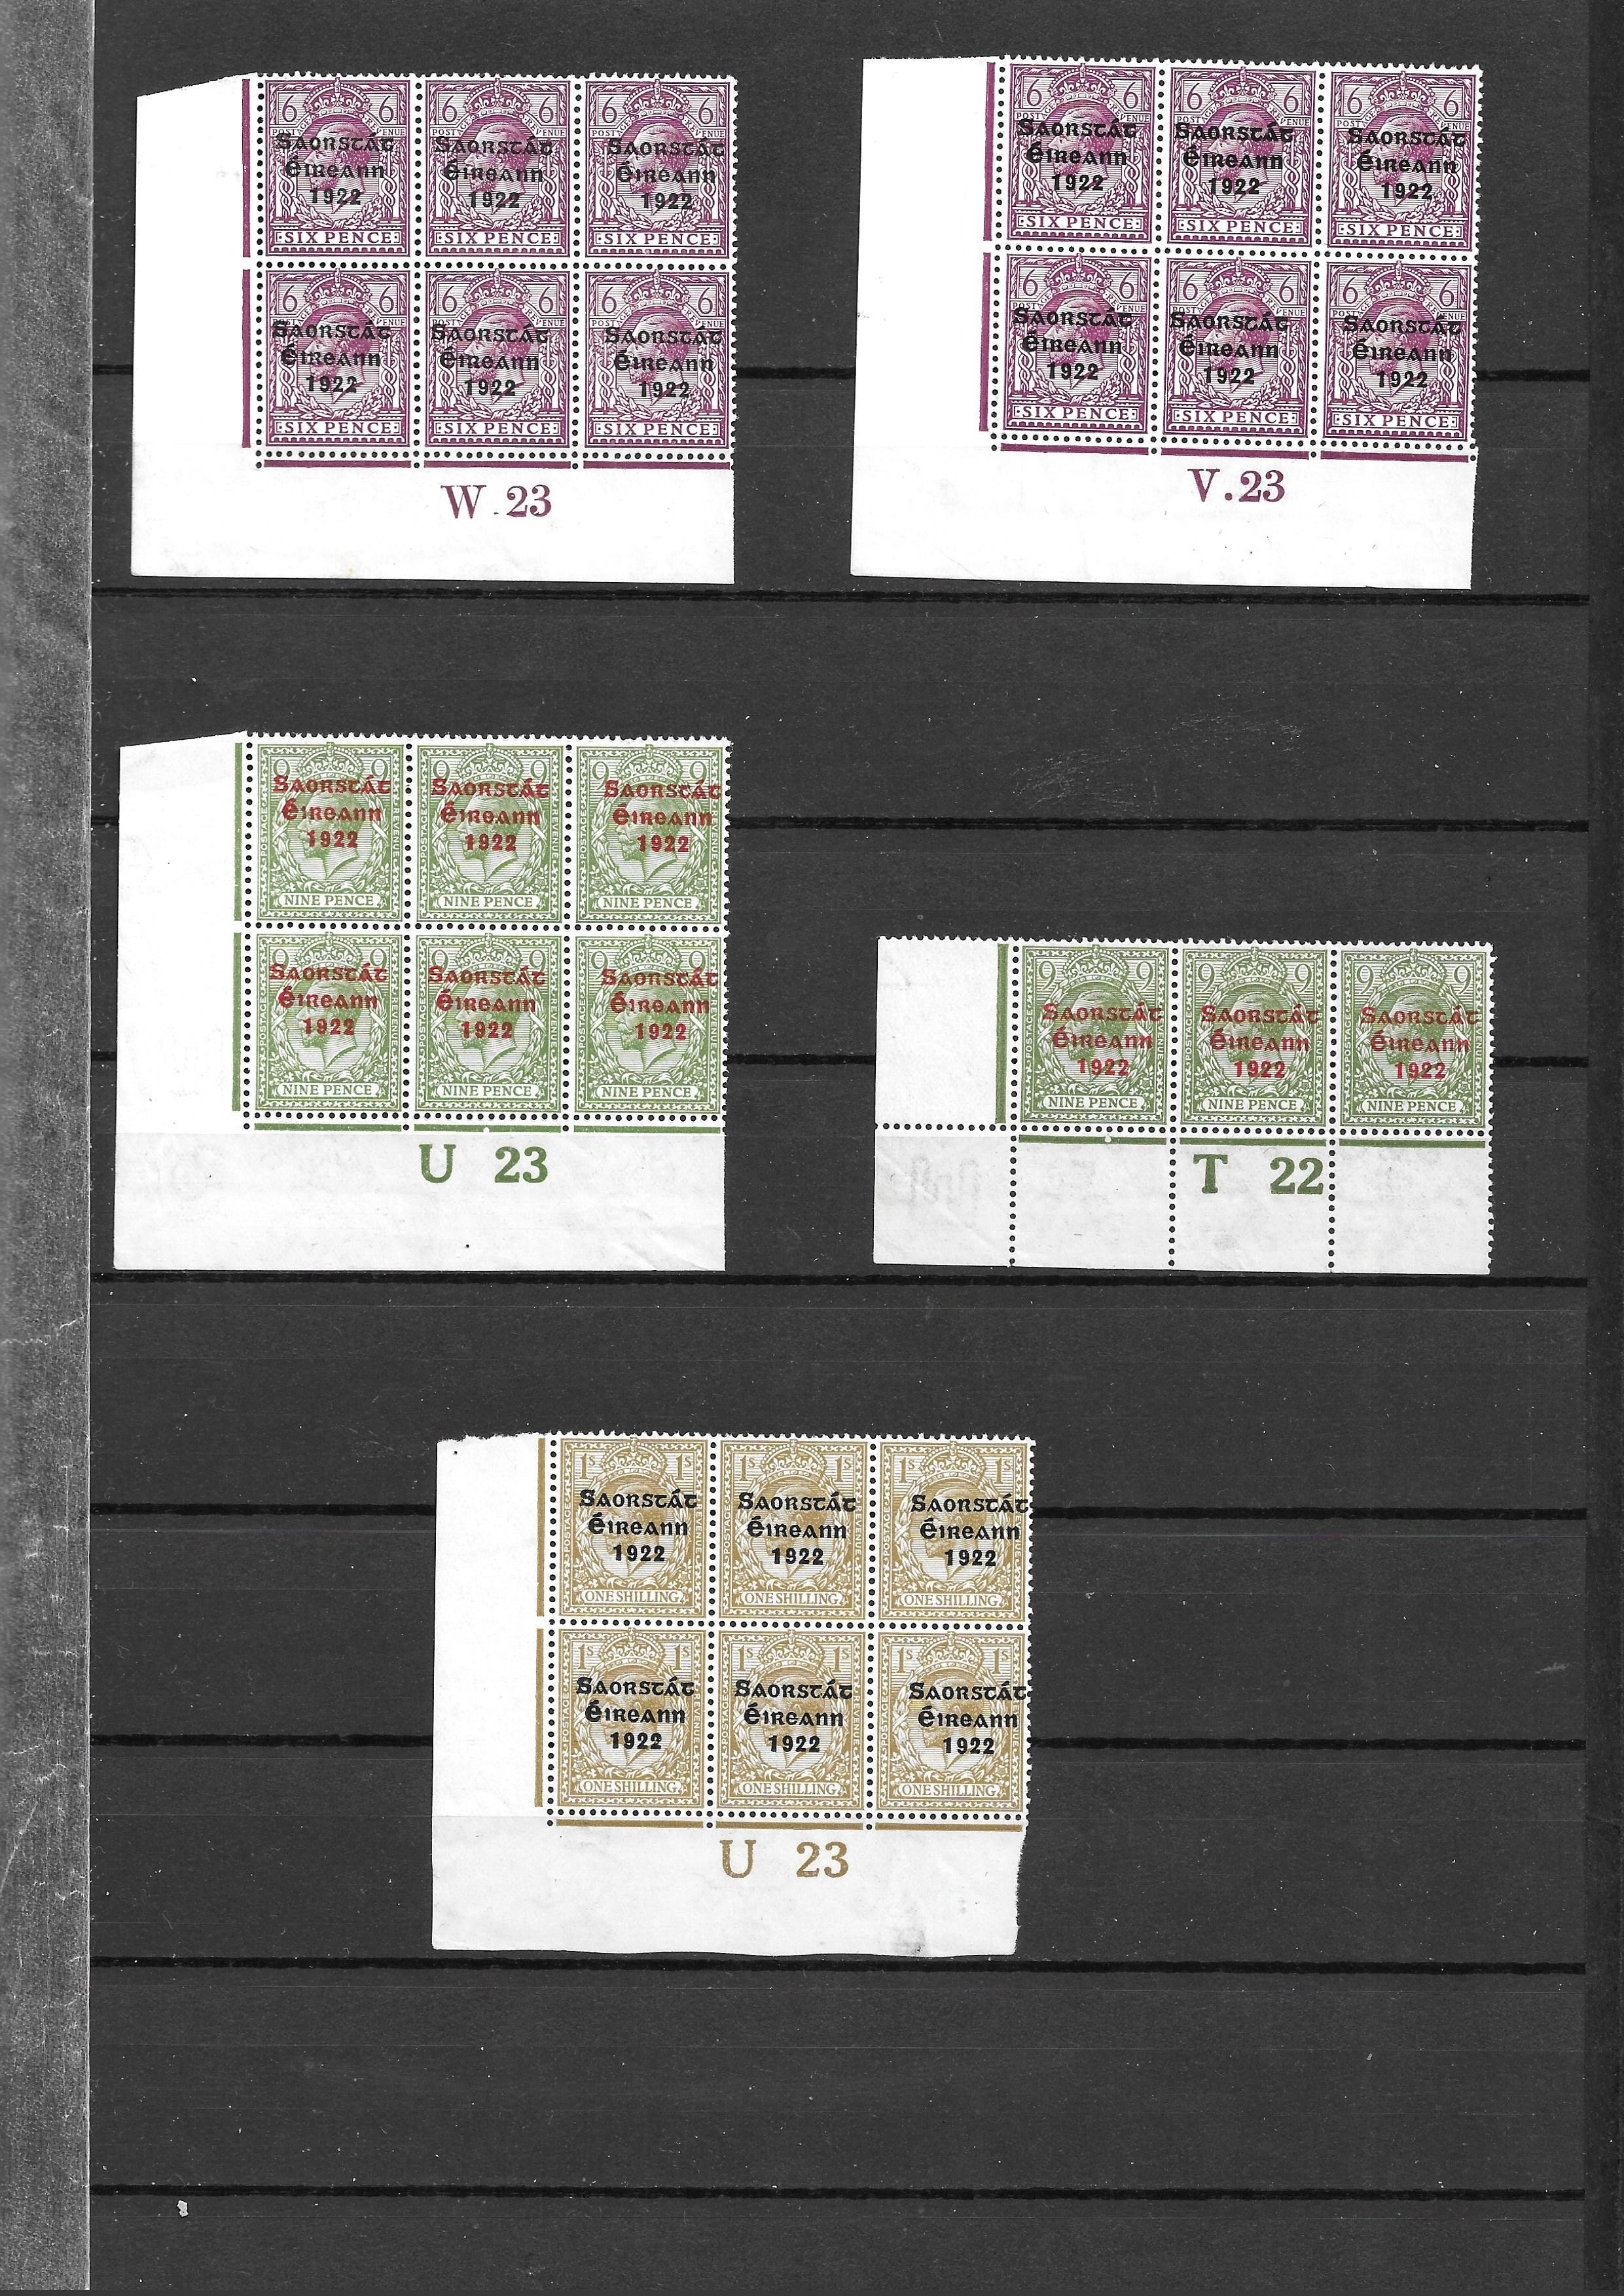 Ireland 1922 GV overprints selection of 21 plate number blocks and strips with values form 1/2d to - Image 3 of 5